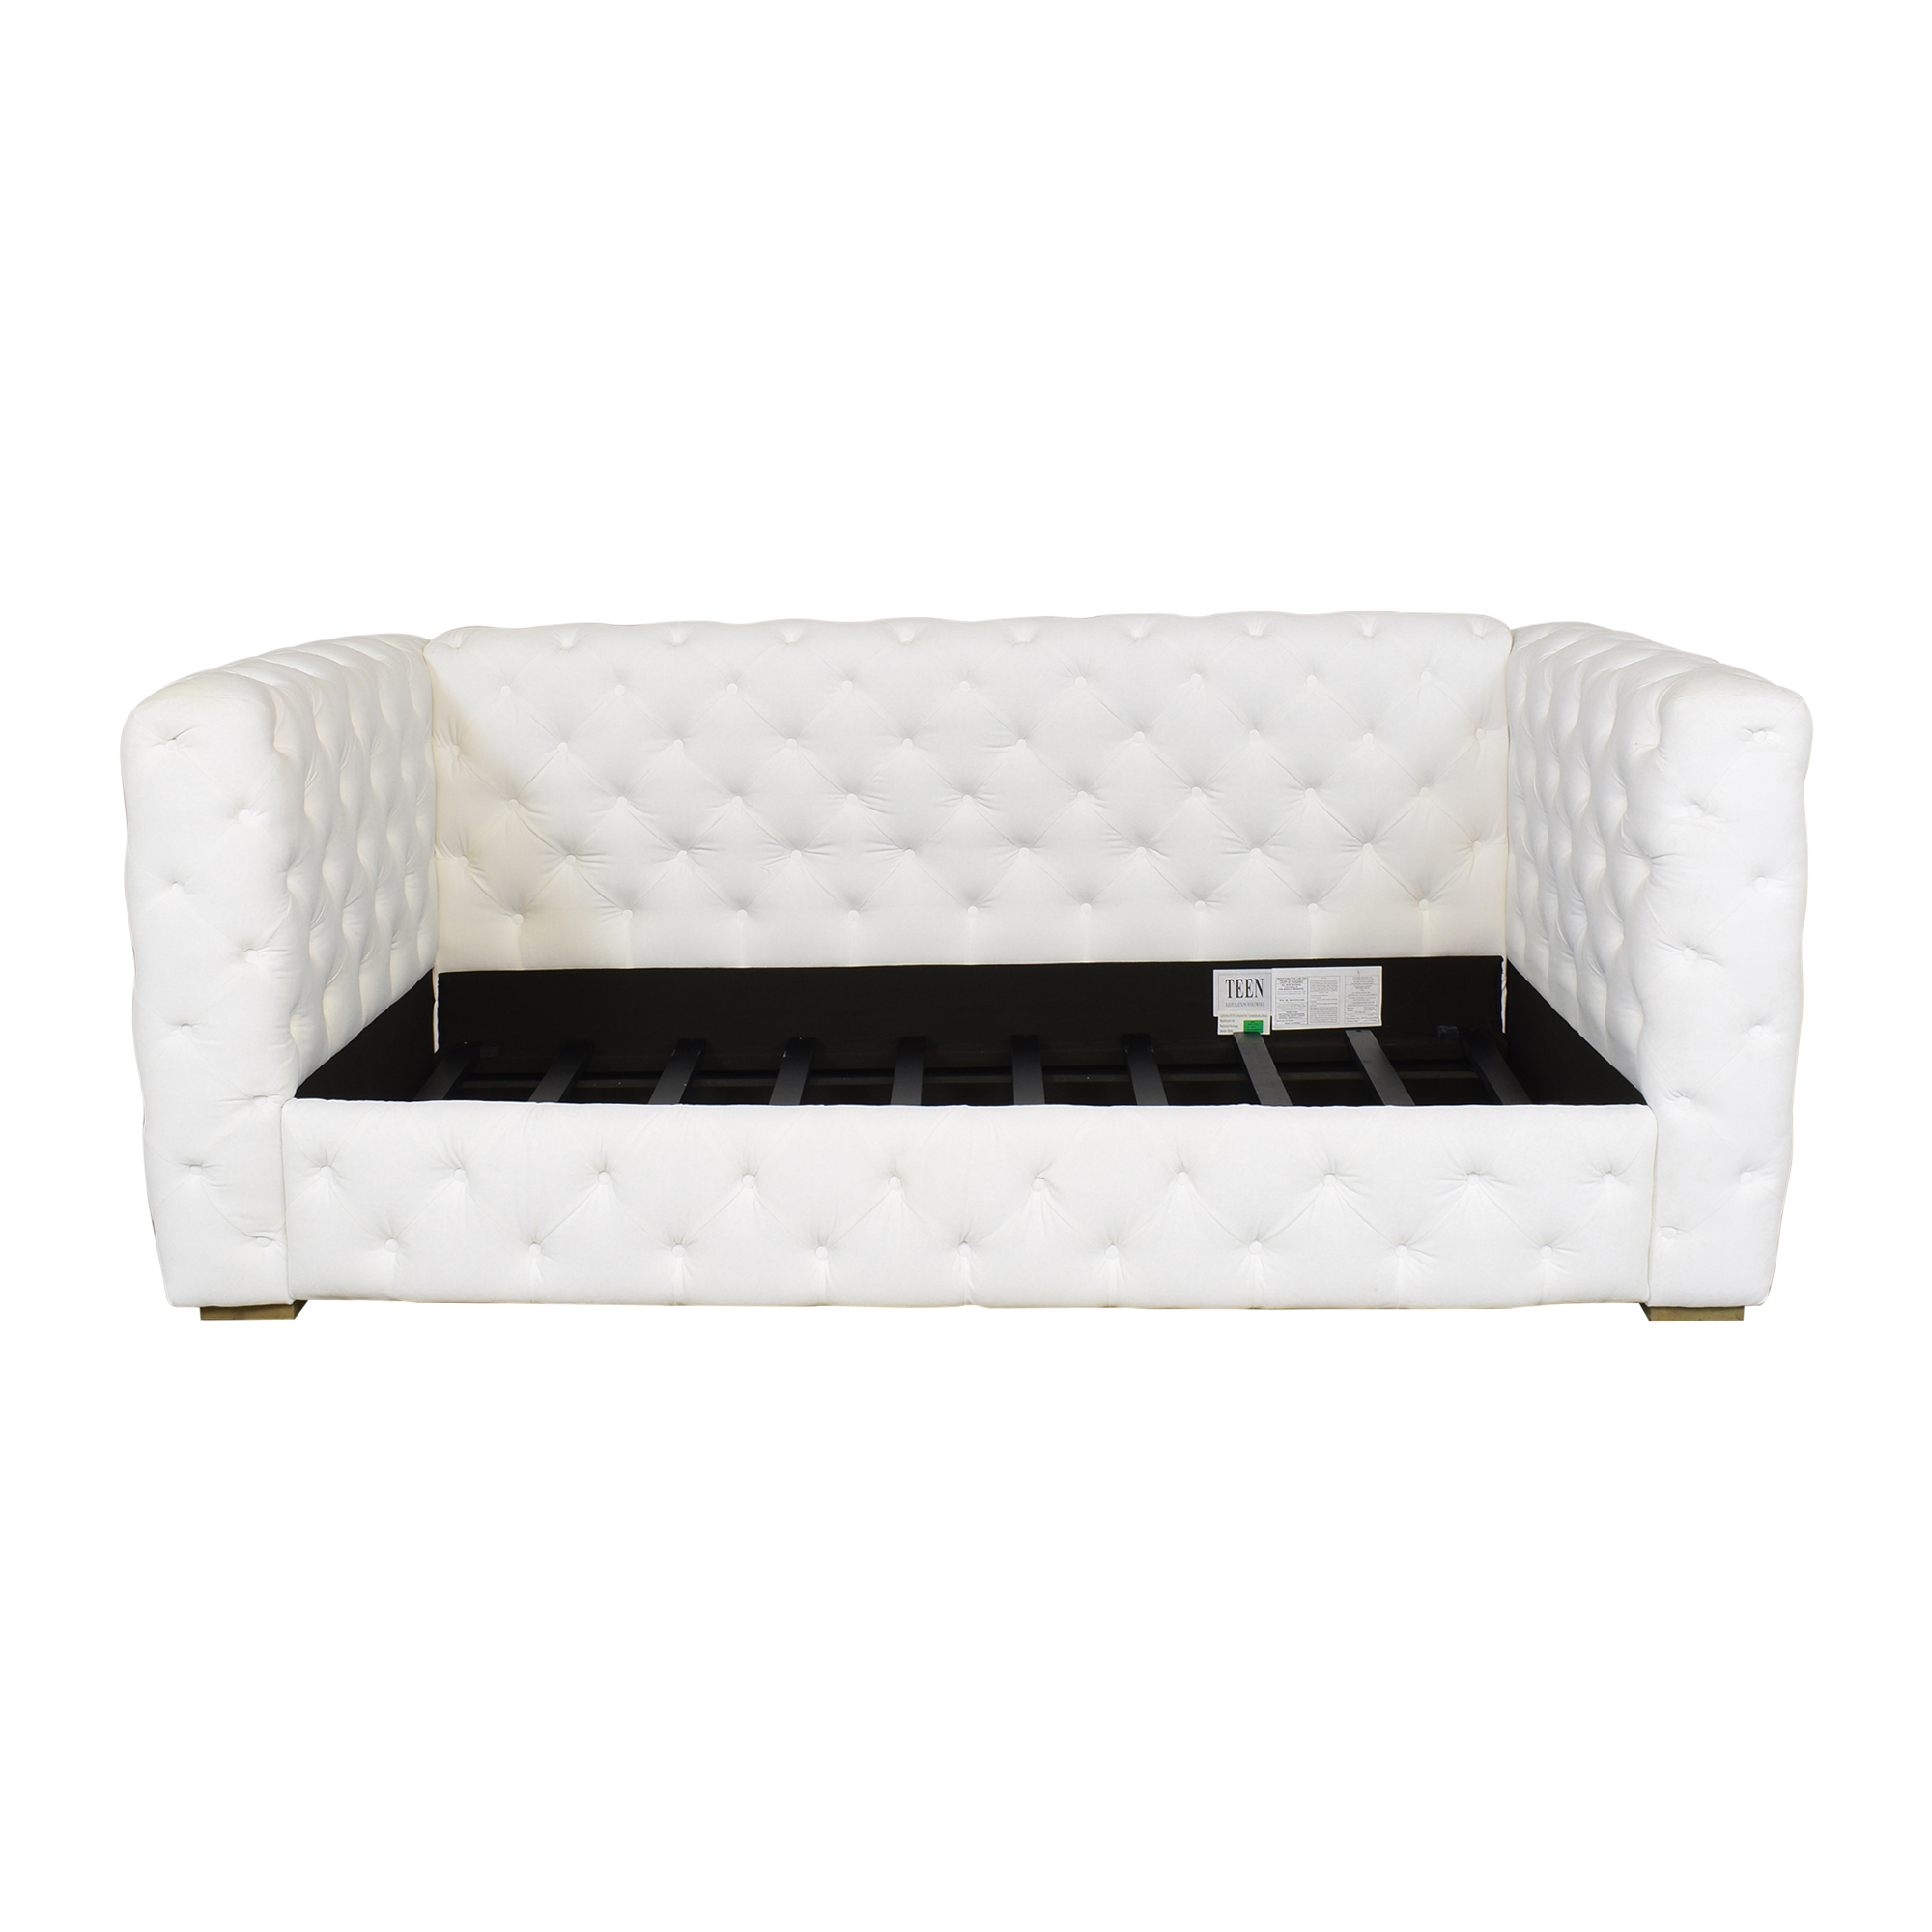 Restoration Hardware Restoration Hardware Tribeca Tufted Twin Daybed ct